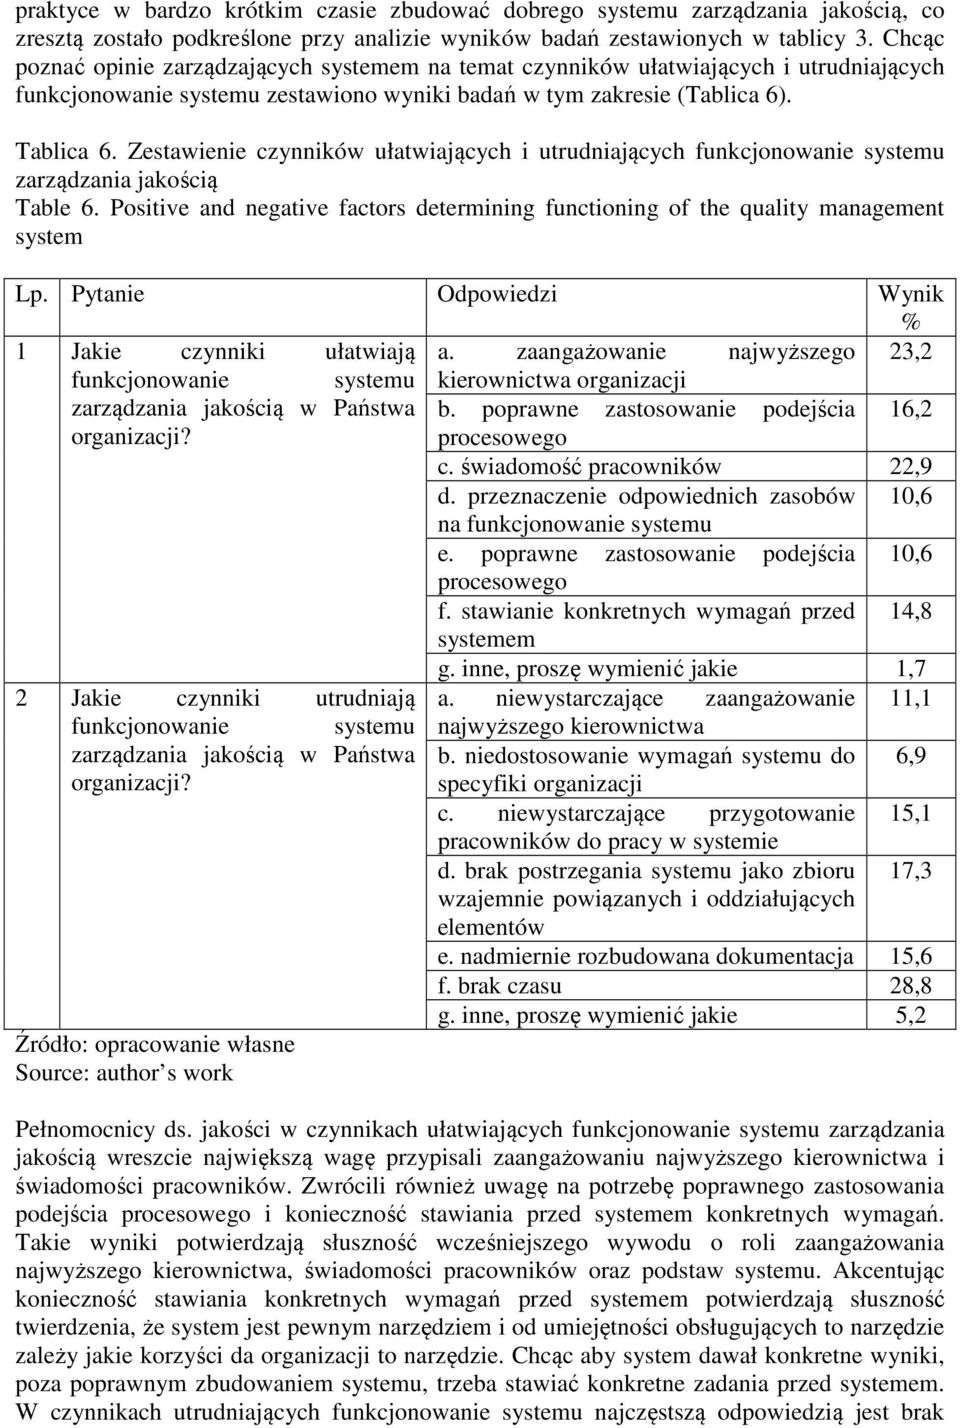 Zestawienie czynników ułatwiających i utrudniających funkcjonowanie systemu zarządzania jakością Table 6. Positive and negative factors determining functioning of the quality management system Lp.